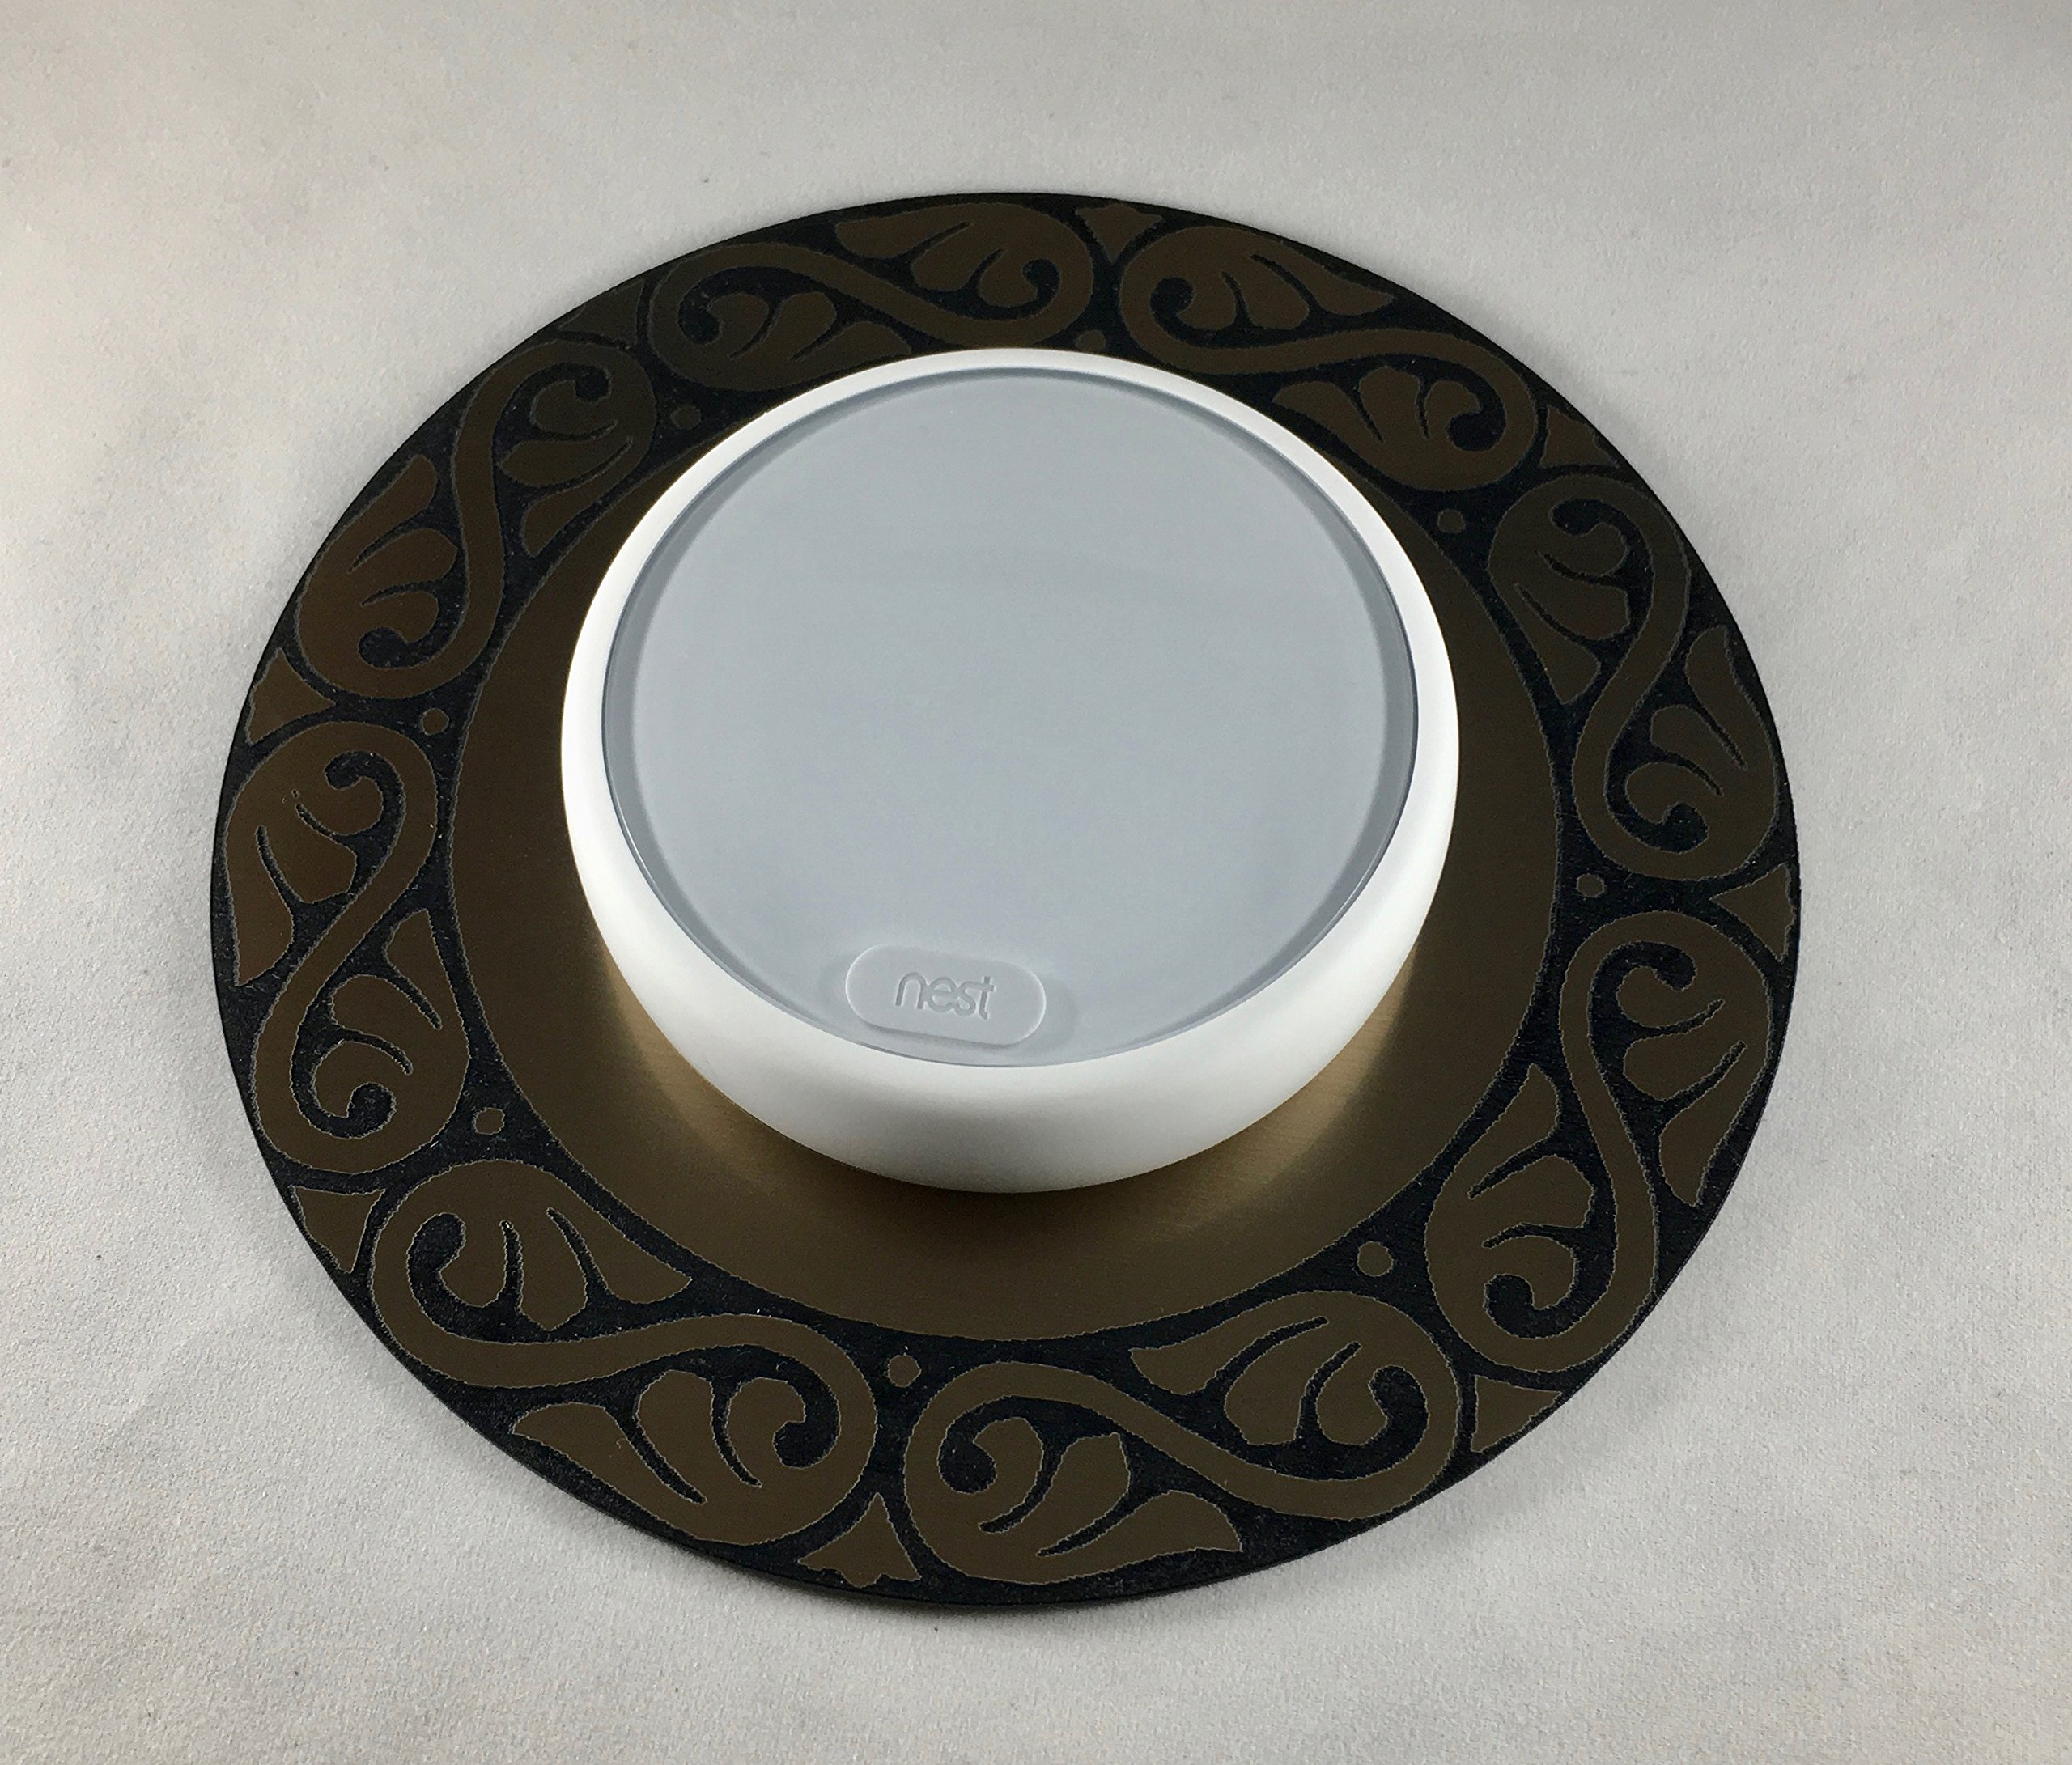 Decorative Nest E Thermostat wall plate - Bronze Feather Design